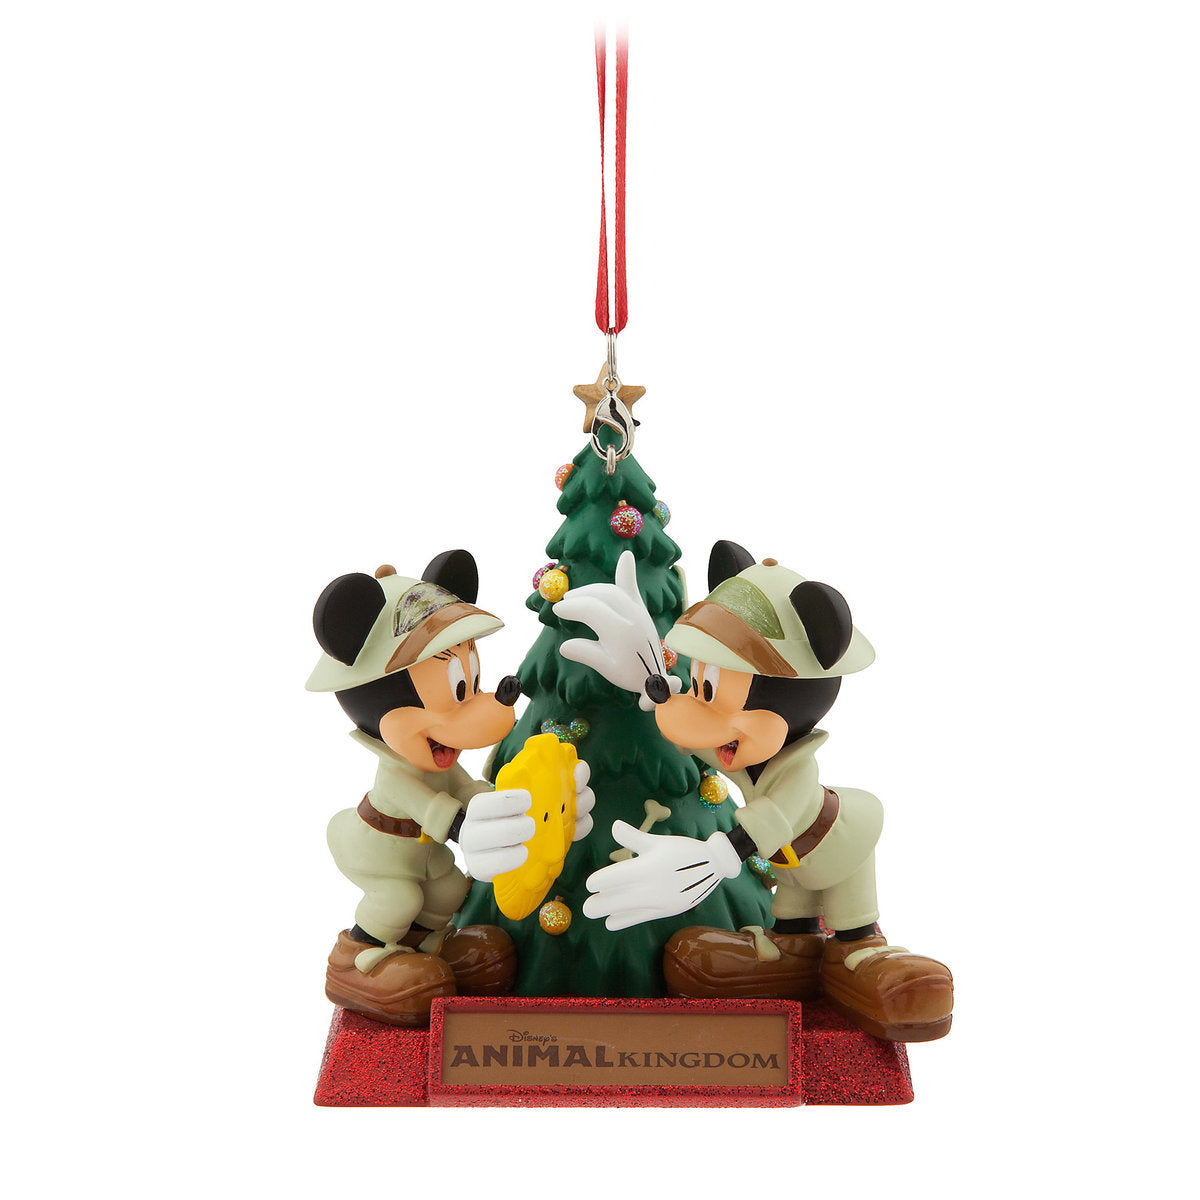 disney world animal kingdom mickey and minnie mouse holiday christmas ornament themepark warehouse - Minnie Mouse Christmas Ornament